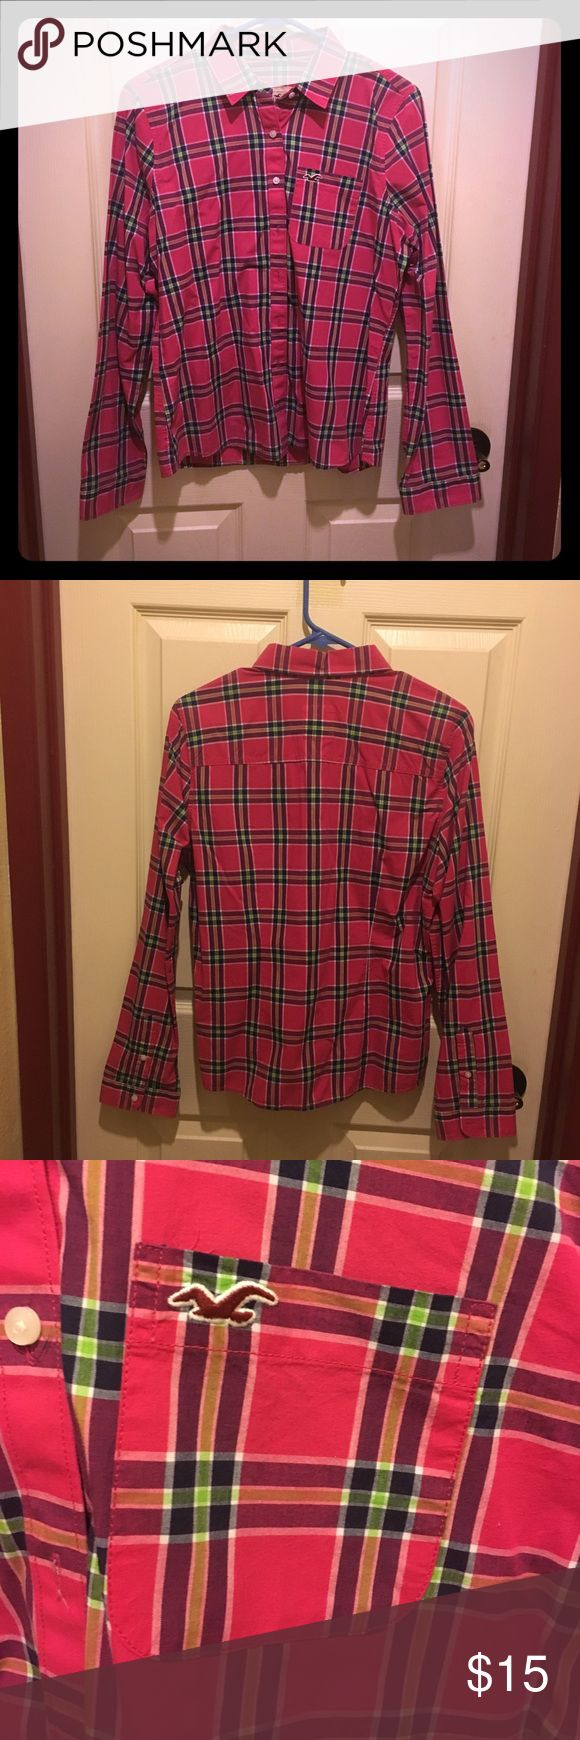 Pink flannel shirt Hollister flannel shirt with pocket. Only worn once. I bought it for a themed party but it's too big fo me. In perfect condition. Make me an offer. Hollister Tops Button Down Shirts